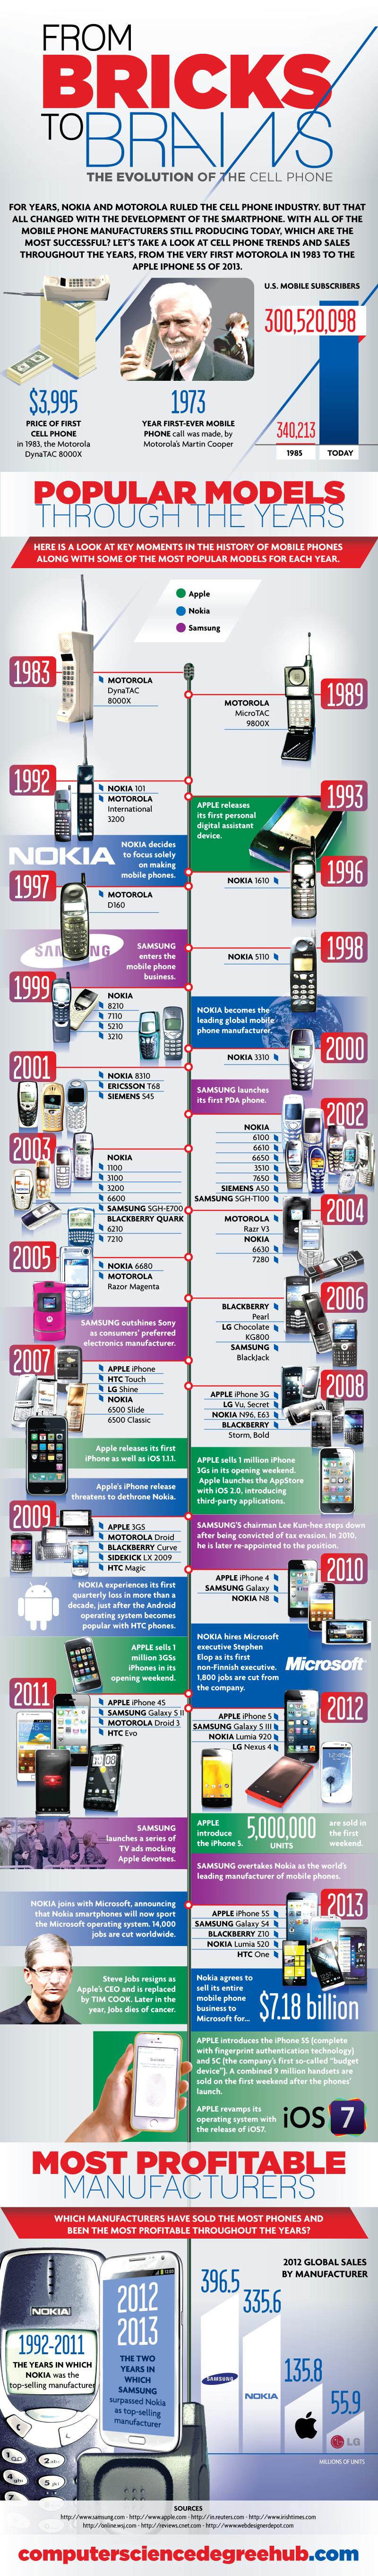 Bricks to Brains: Evolution of Cellphones